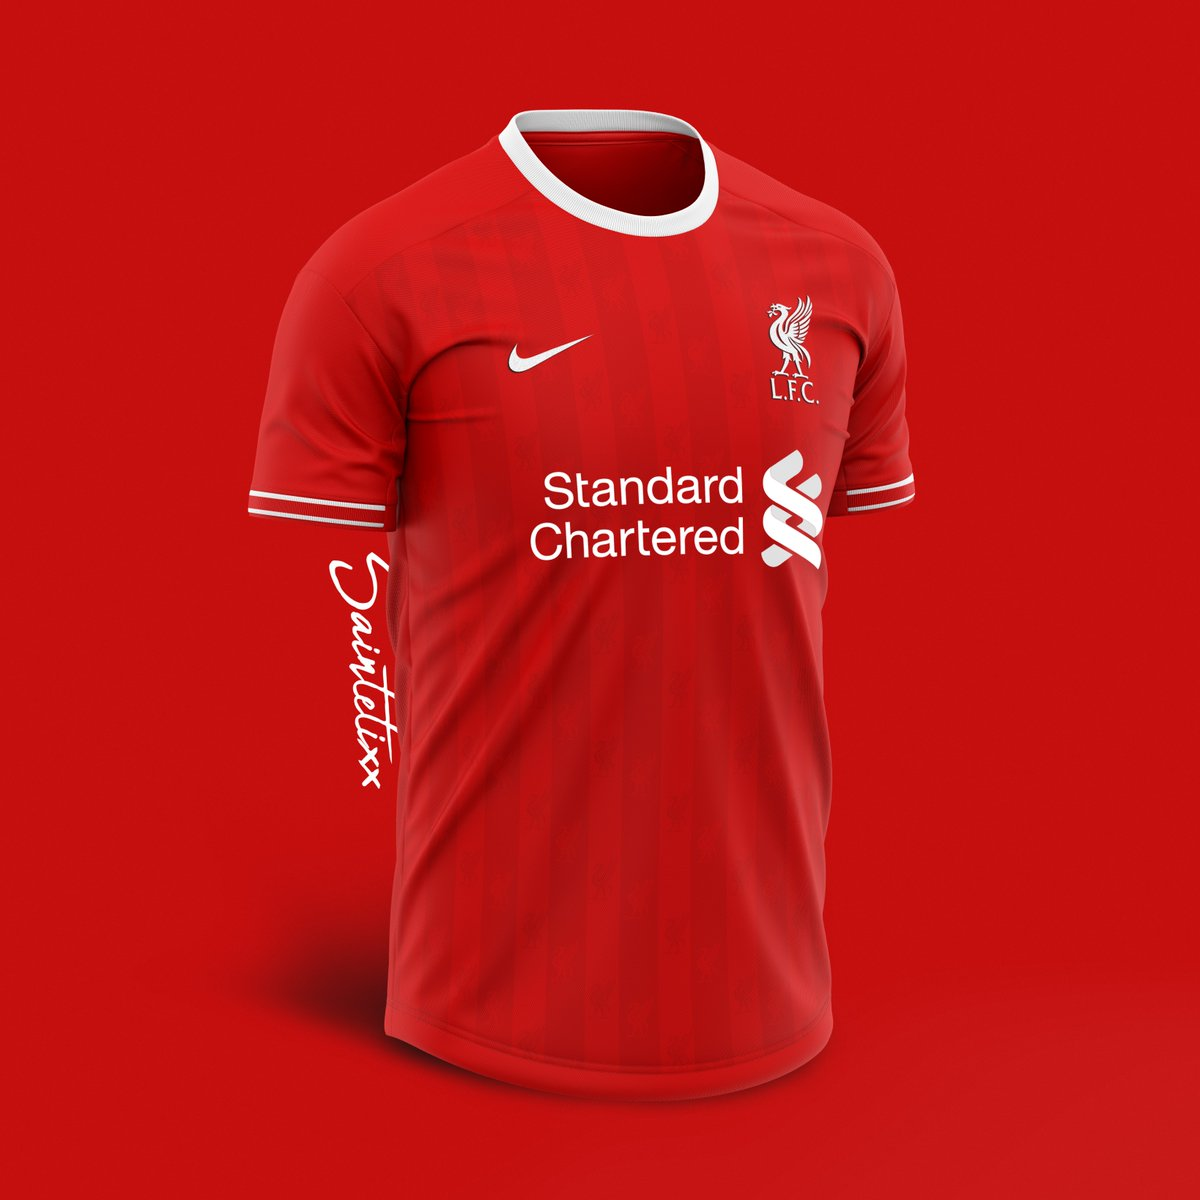 quality design 9d01f 2f8a6 6 Nike Liverpool Home, Away & Third Kit Concepts By ...